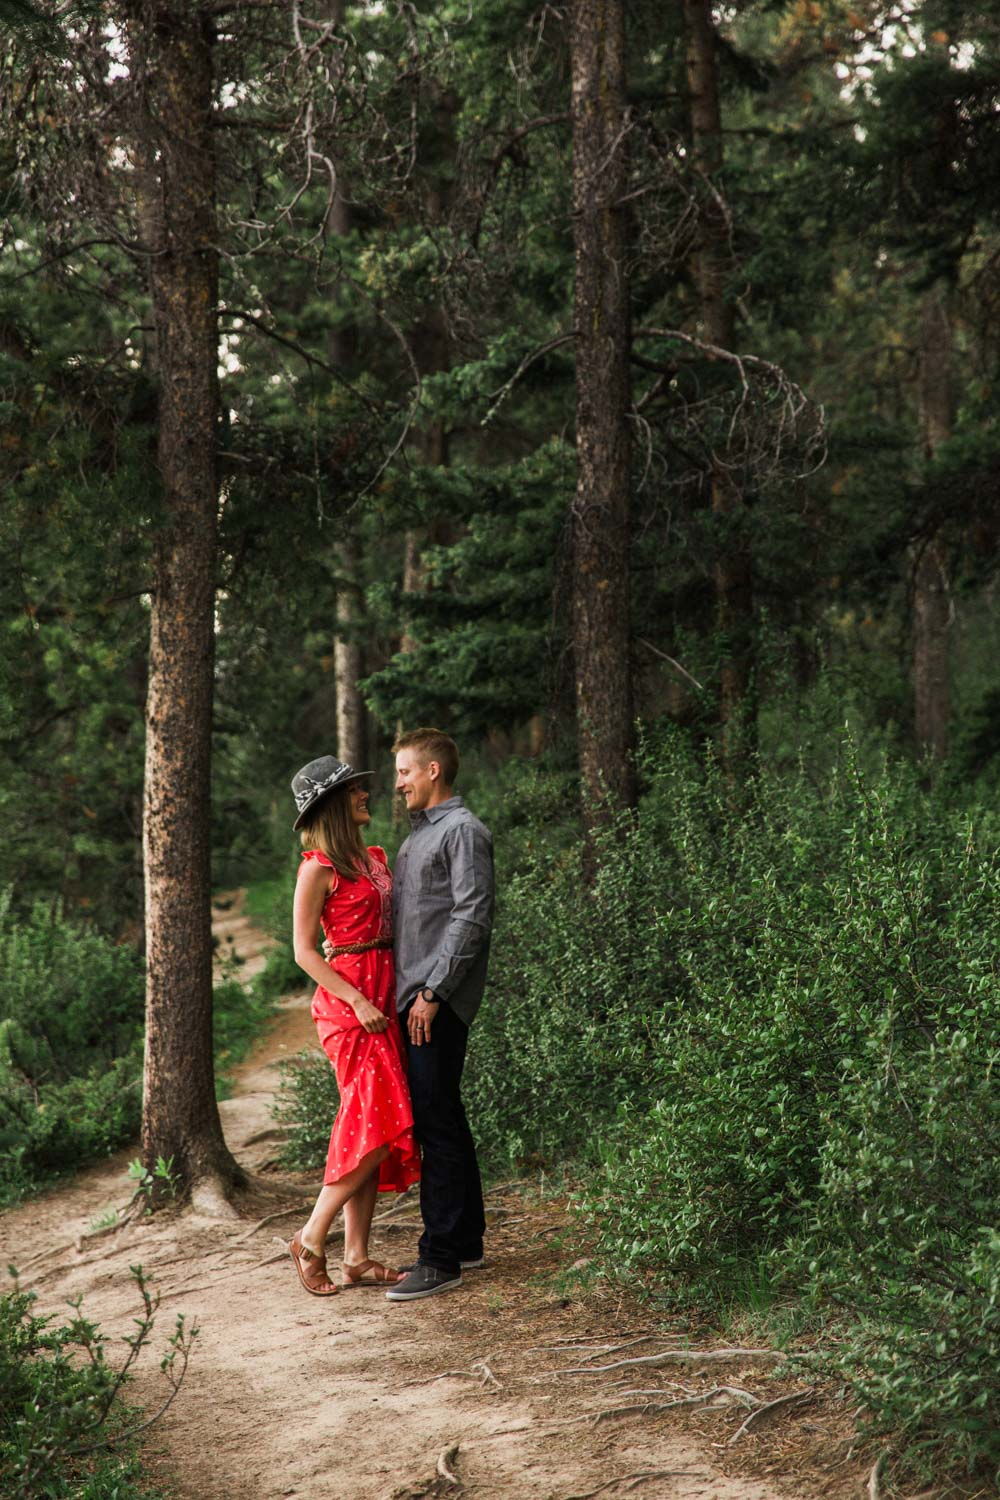 Vacation Anniversary Shoot in Banff, Canada.  Mountain Adventure Photos by Photographer Jennie Guenard